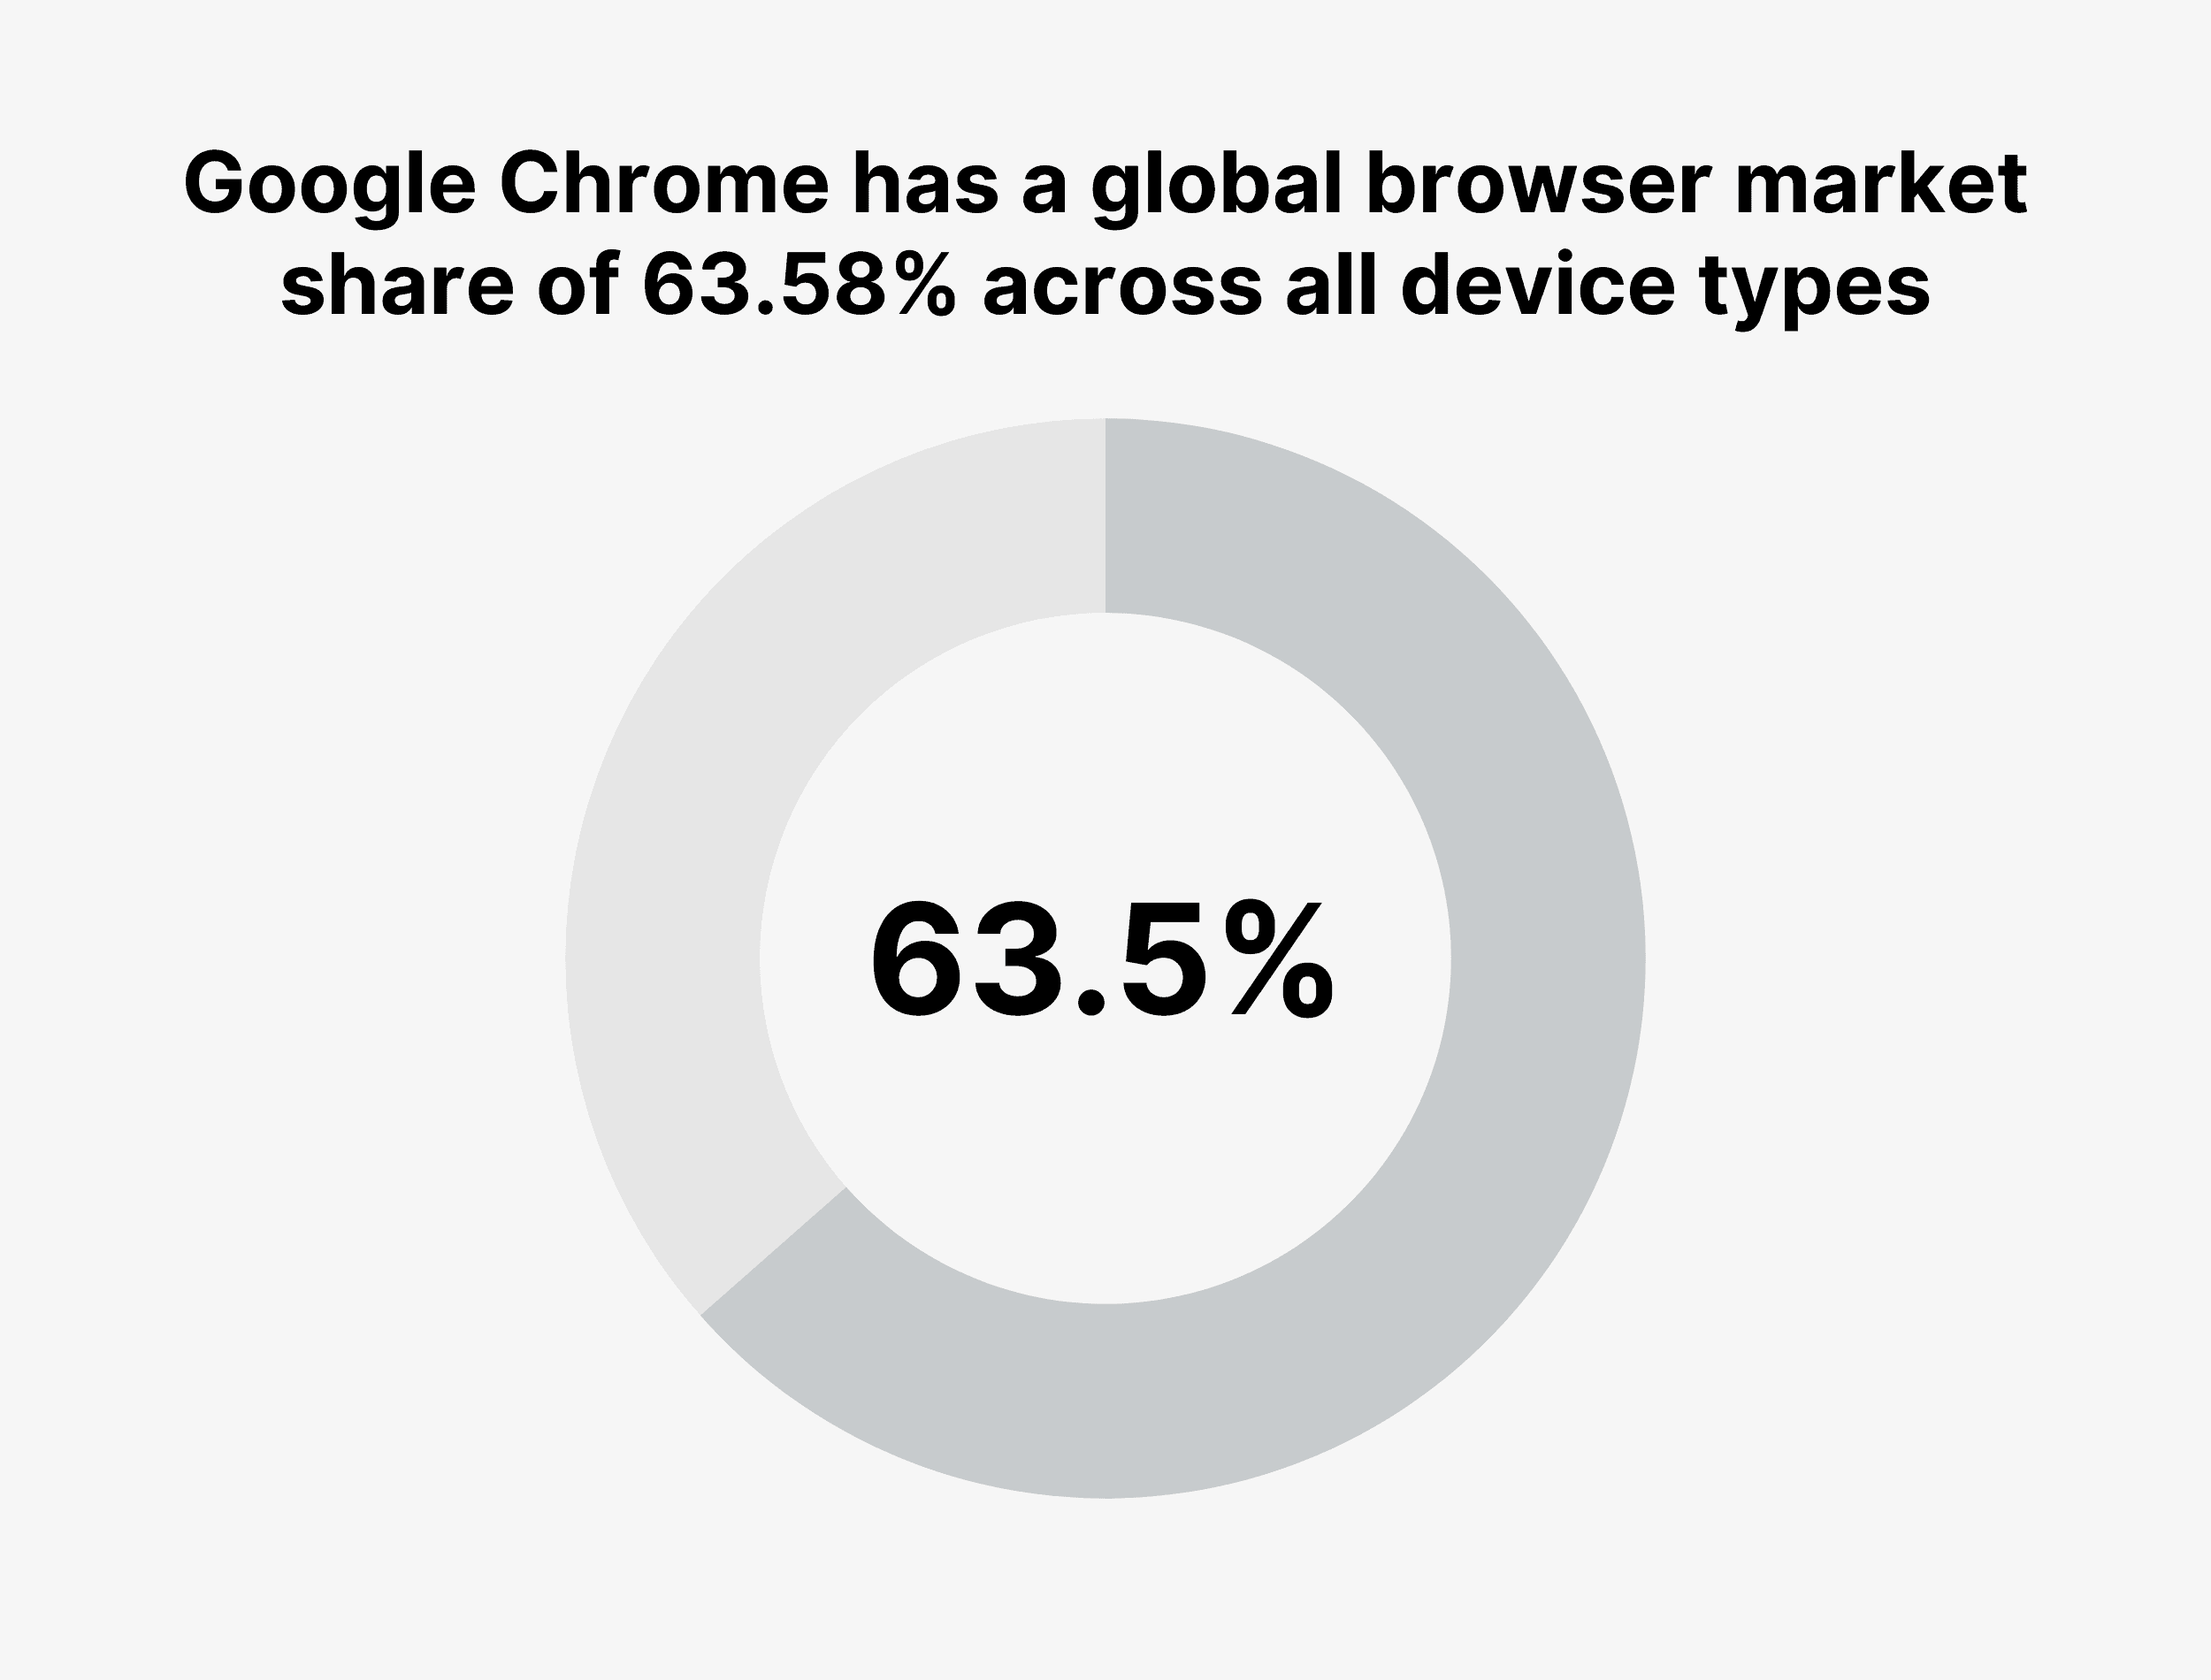 Google Chrome has a global browser market share of 63.58% across all device types